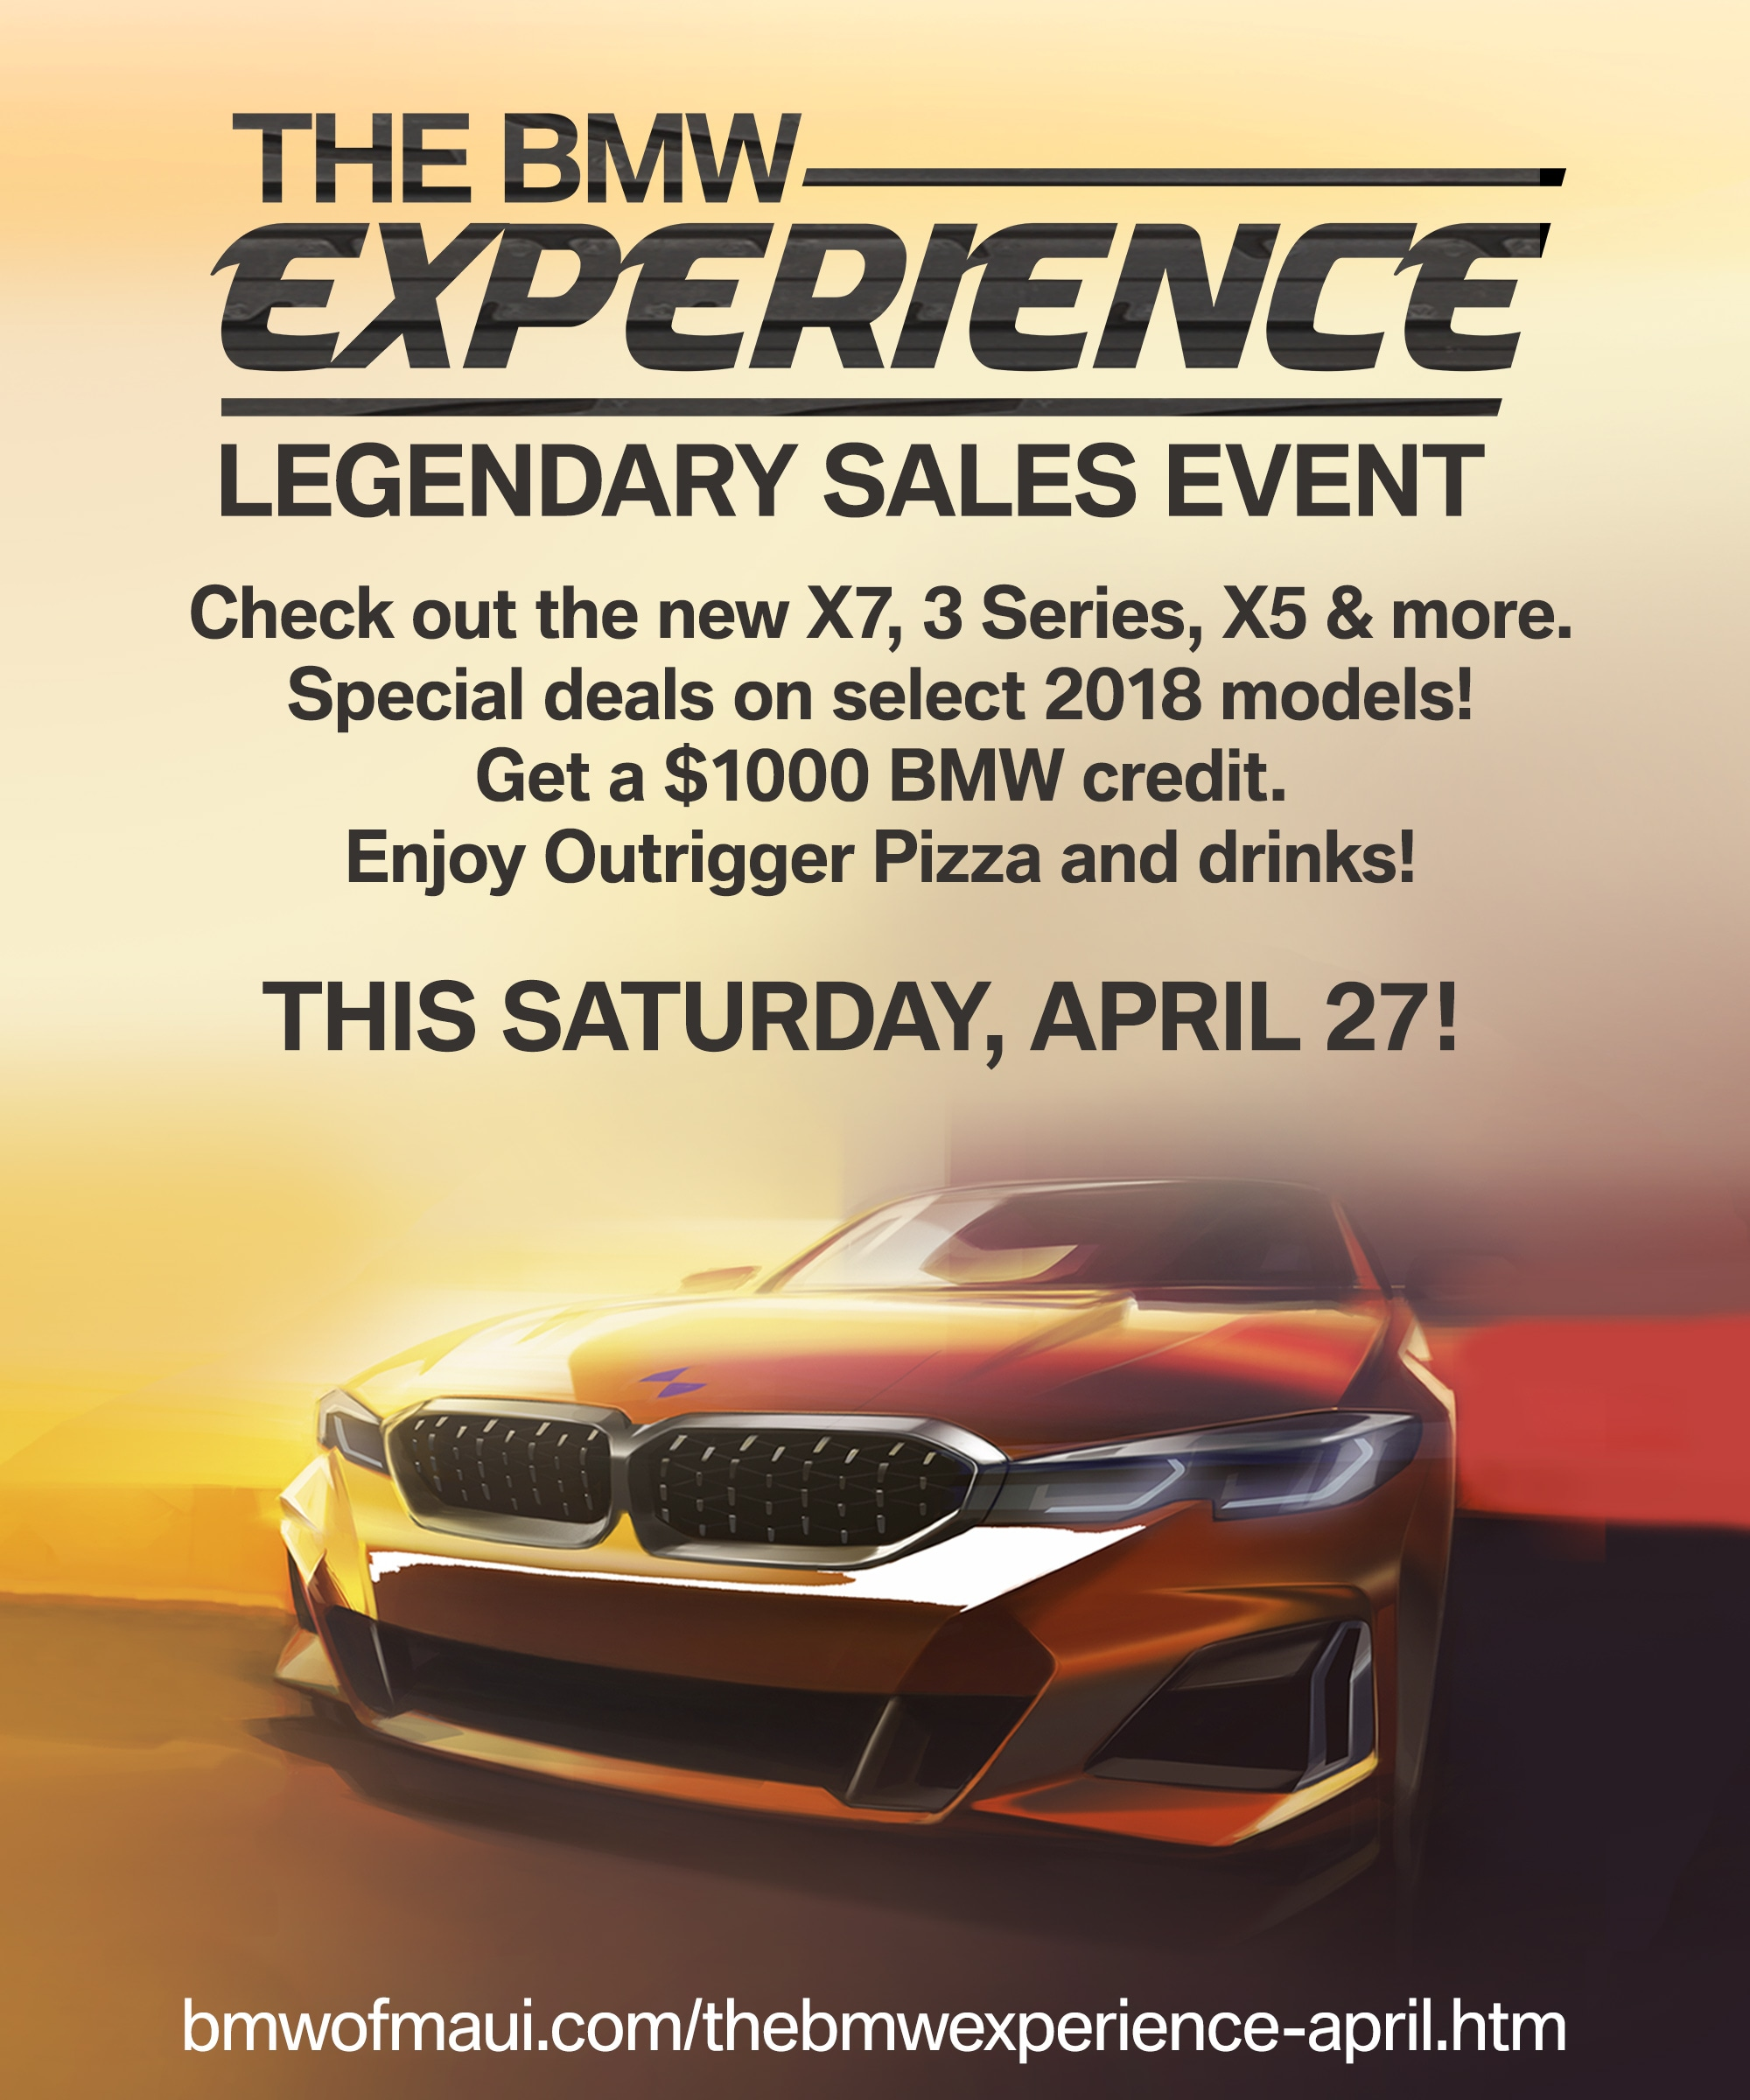 THE BMW EXPERIENCE - SATURDAY, APRIL 27, 2019